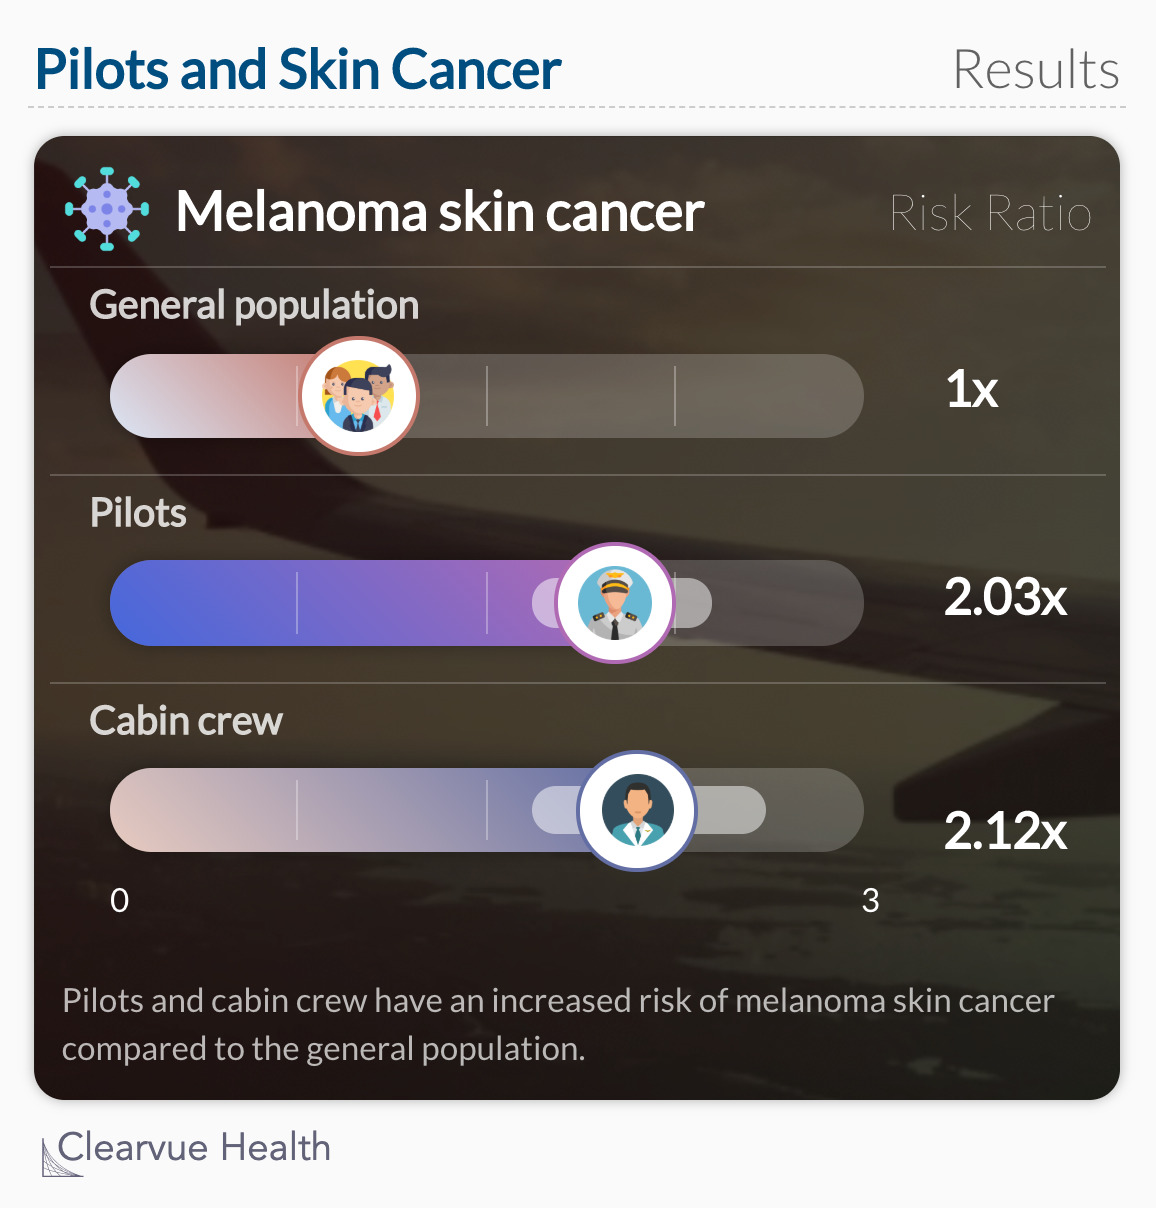 Pilots and Skin Cancer: Study Data